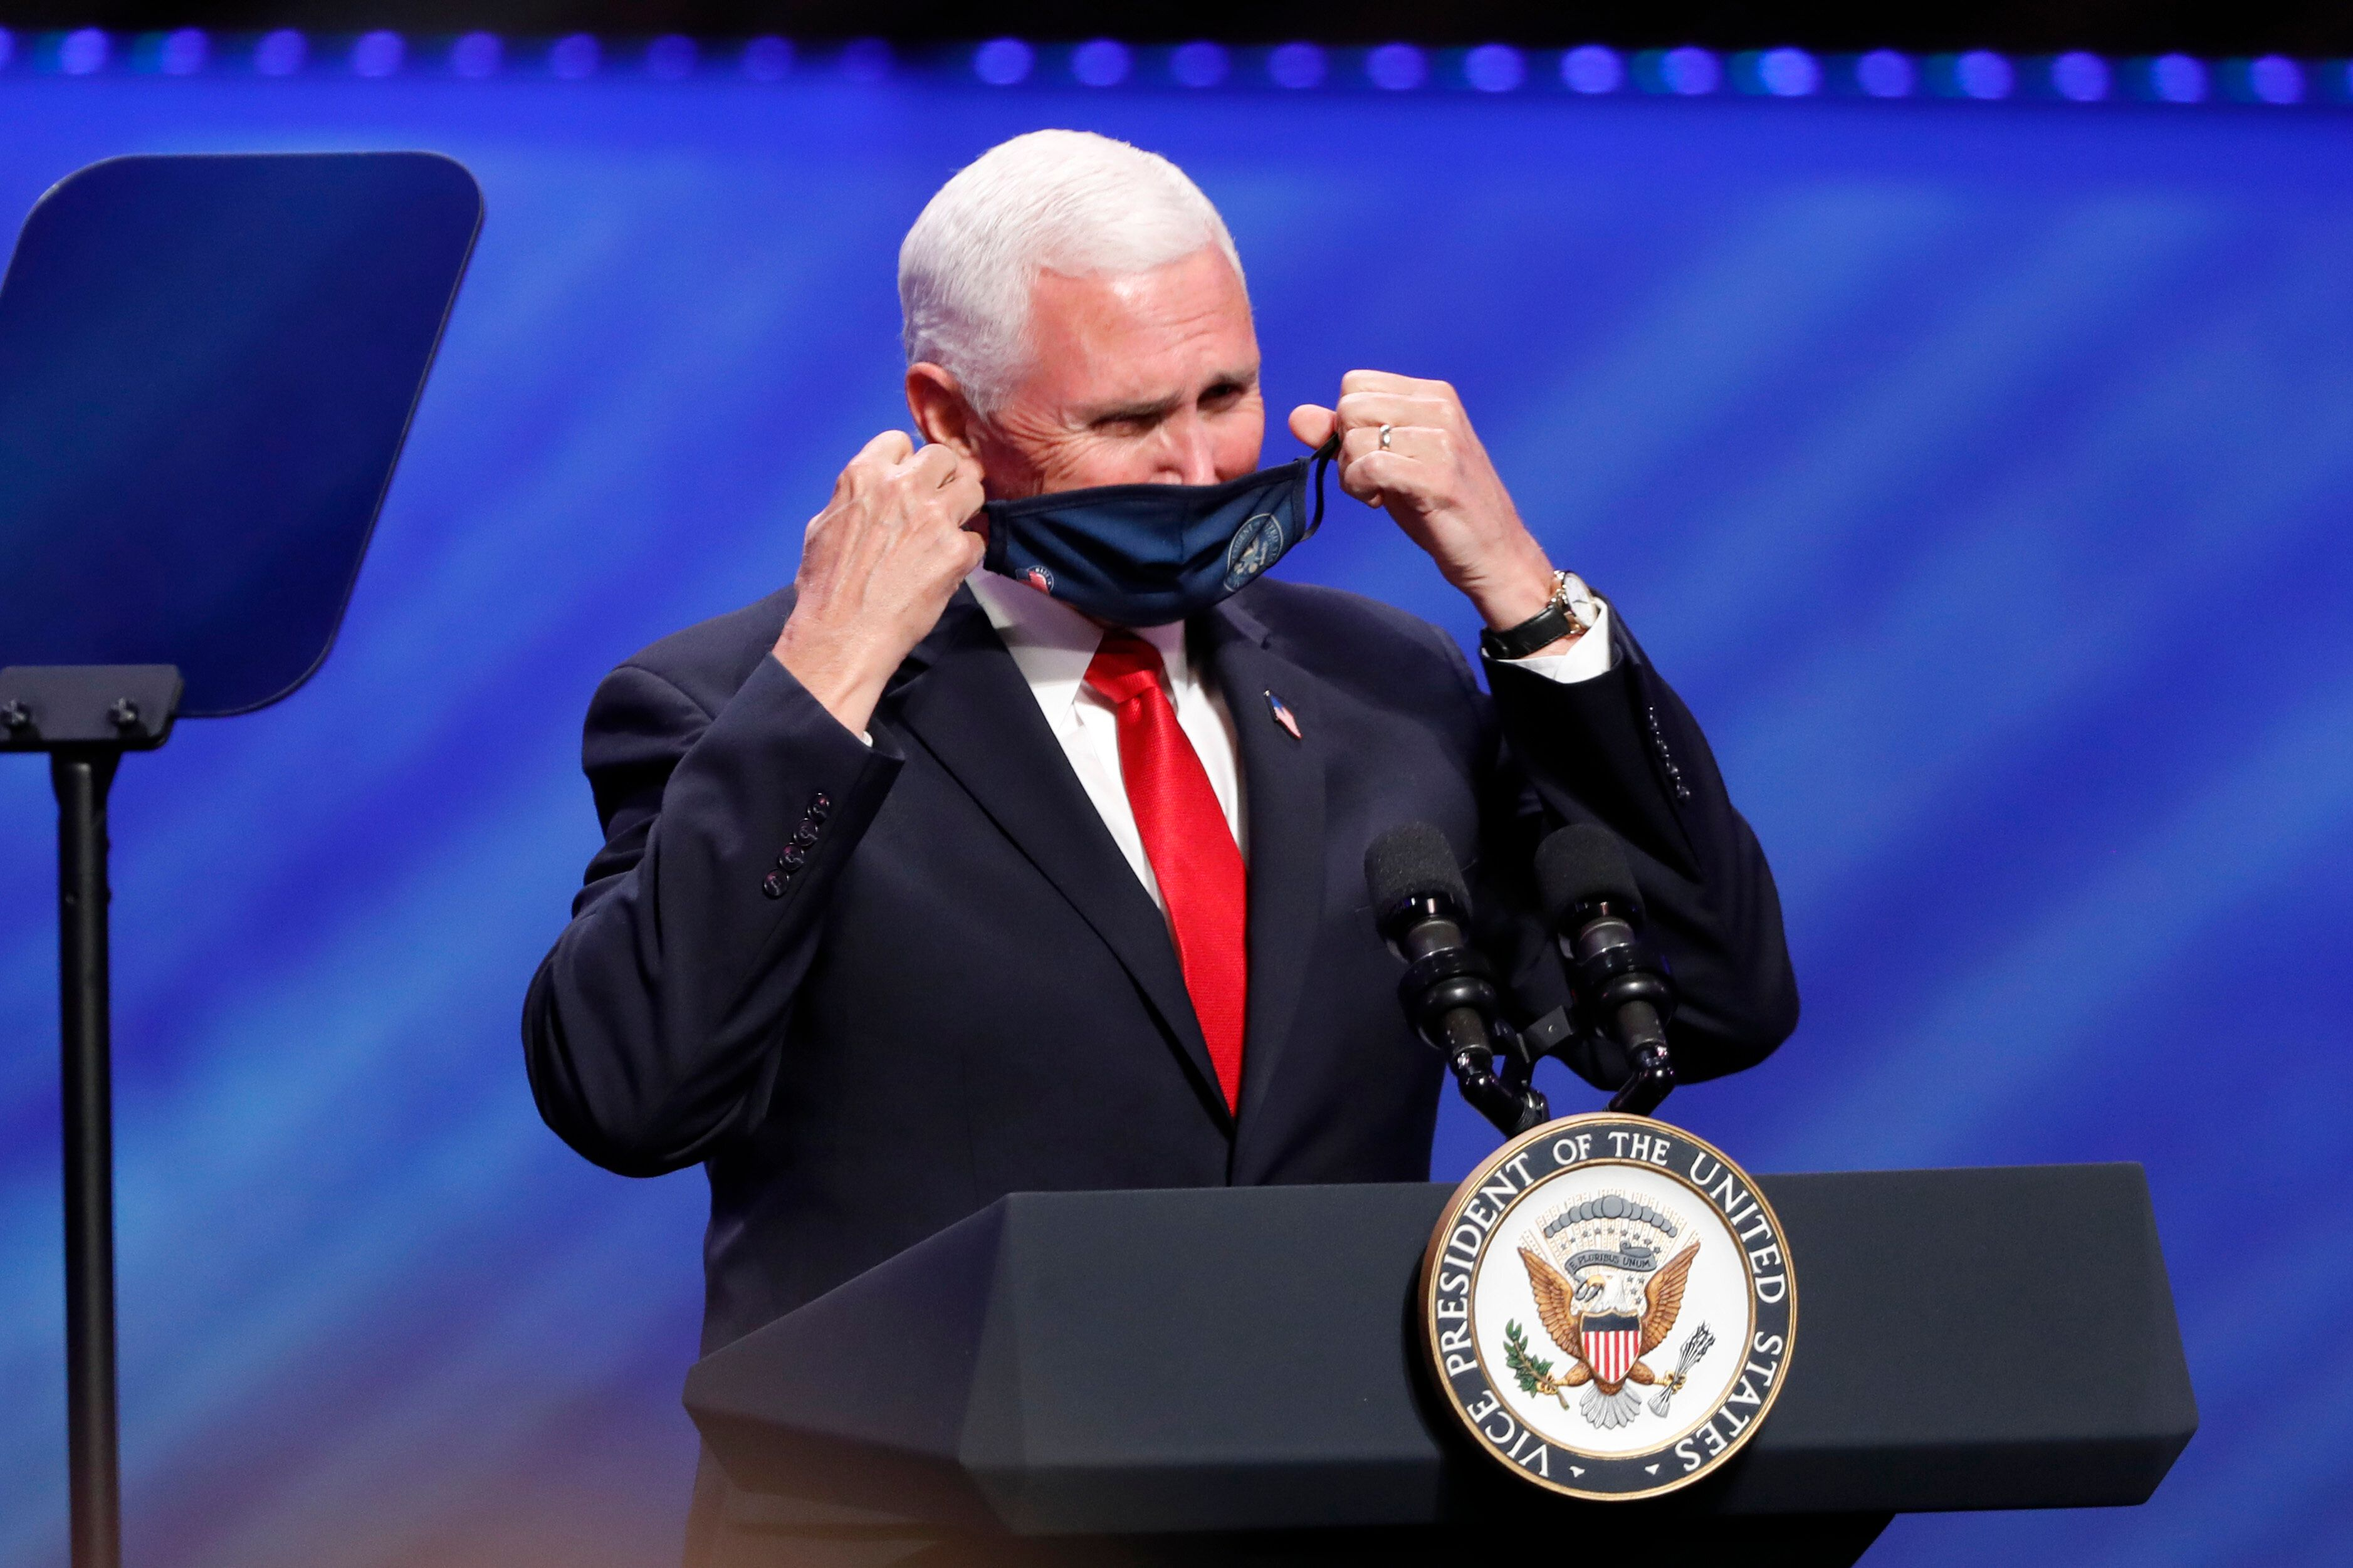 Vice President Mike Pence removes his mask to make comments at First Baptist Church Dallas.